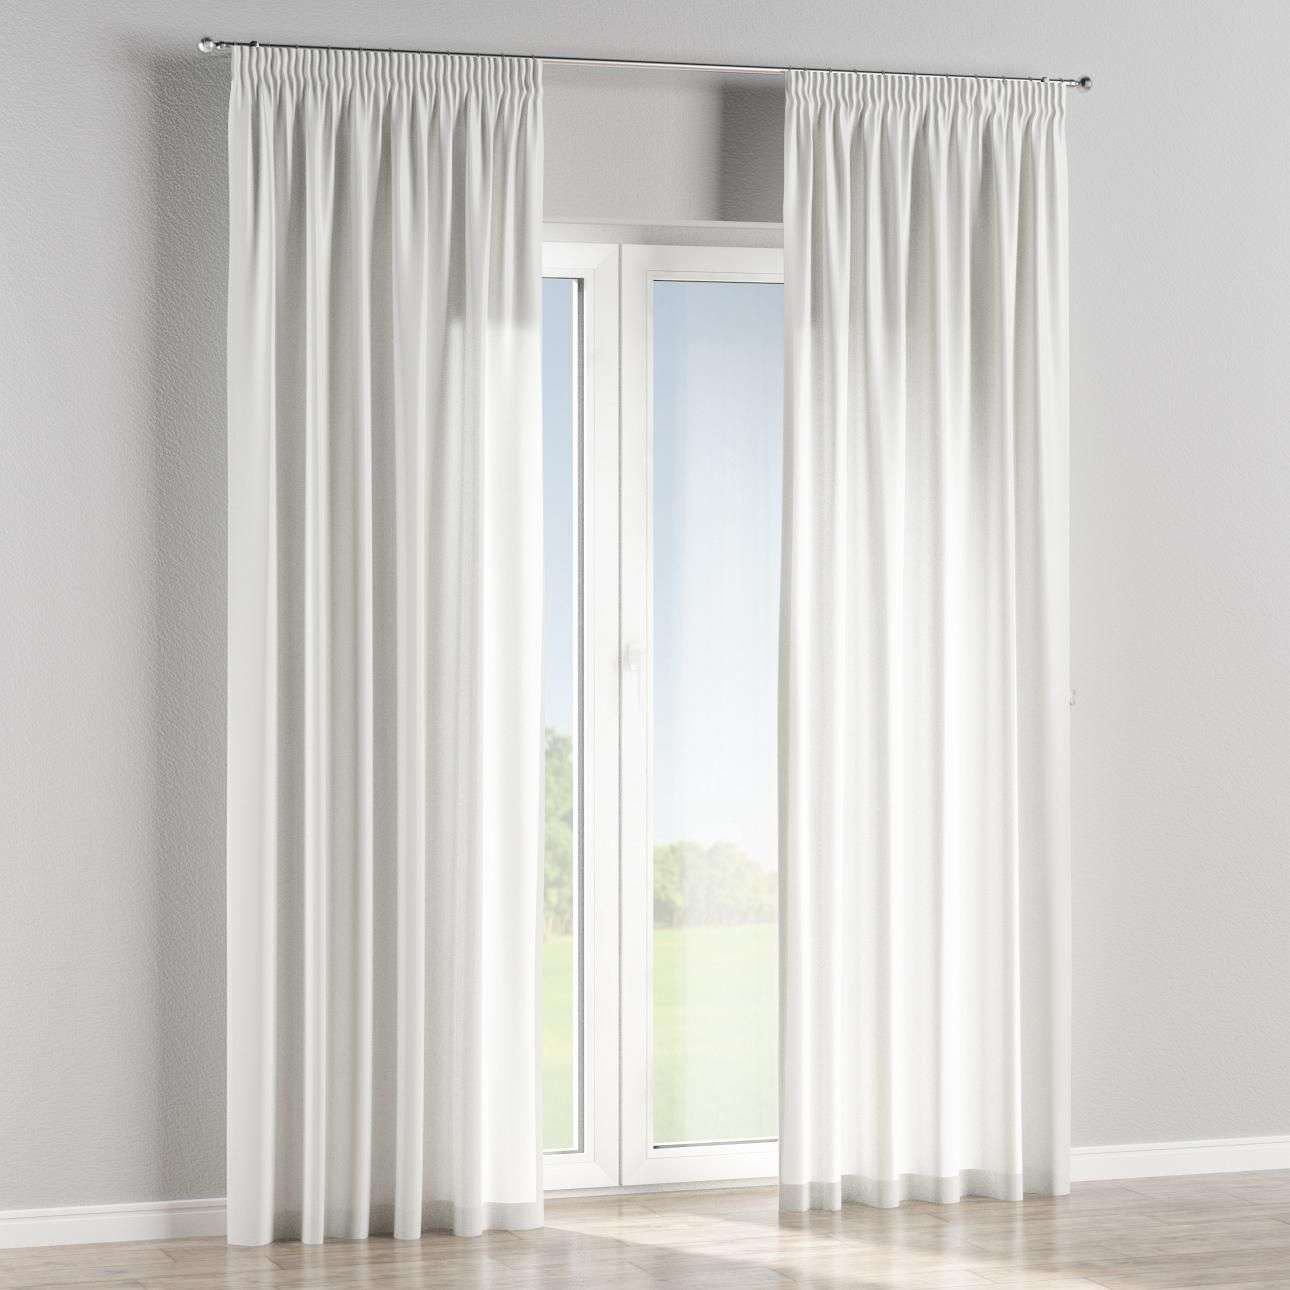 Pencil pleat lined curtains in collection Mirella, fabric: 141-12